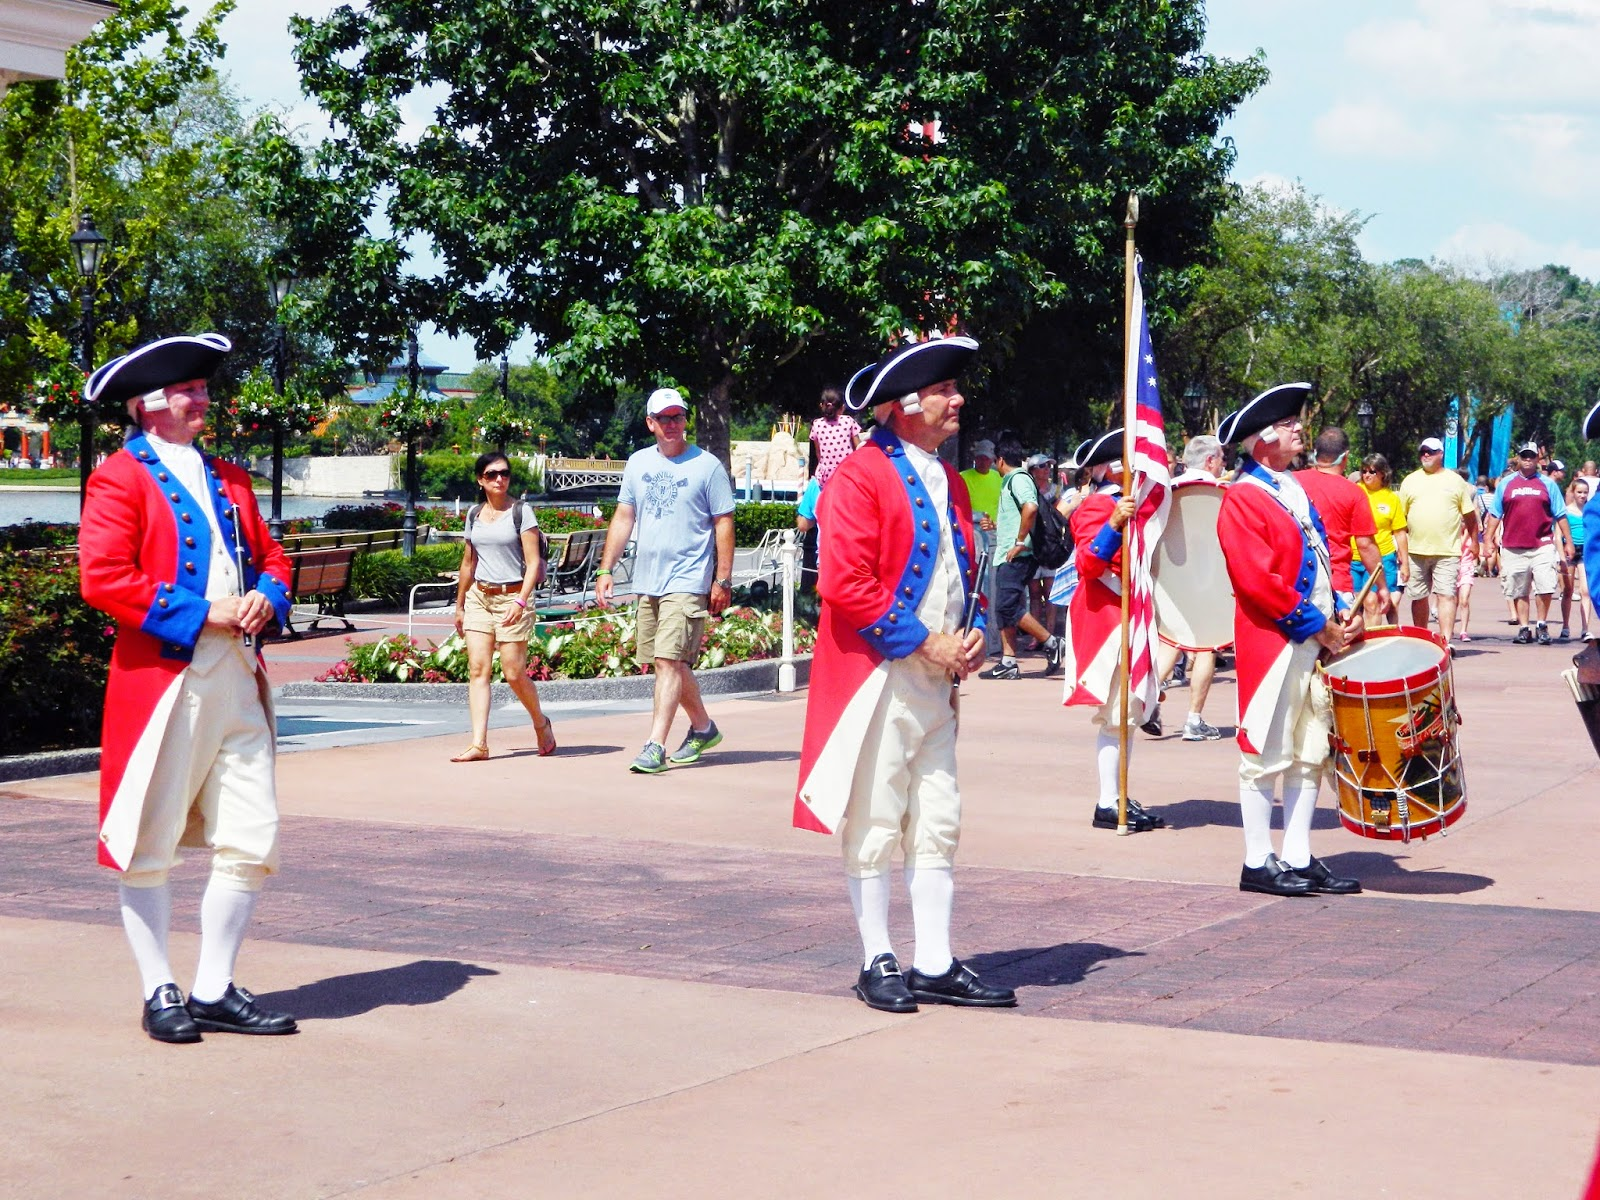 epcot america outfits drums flag